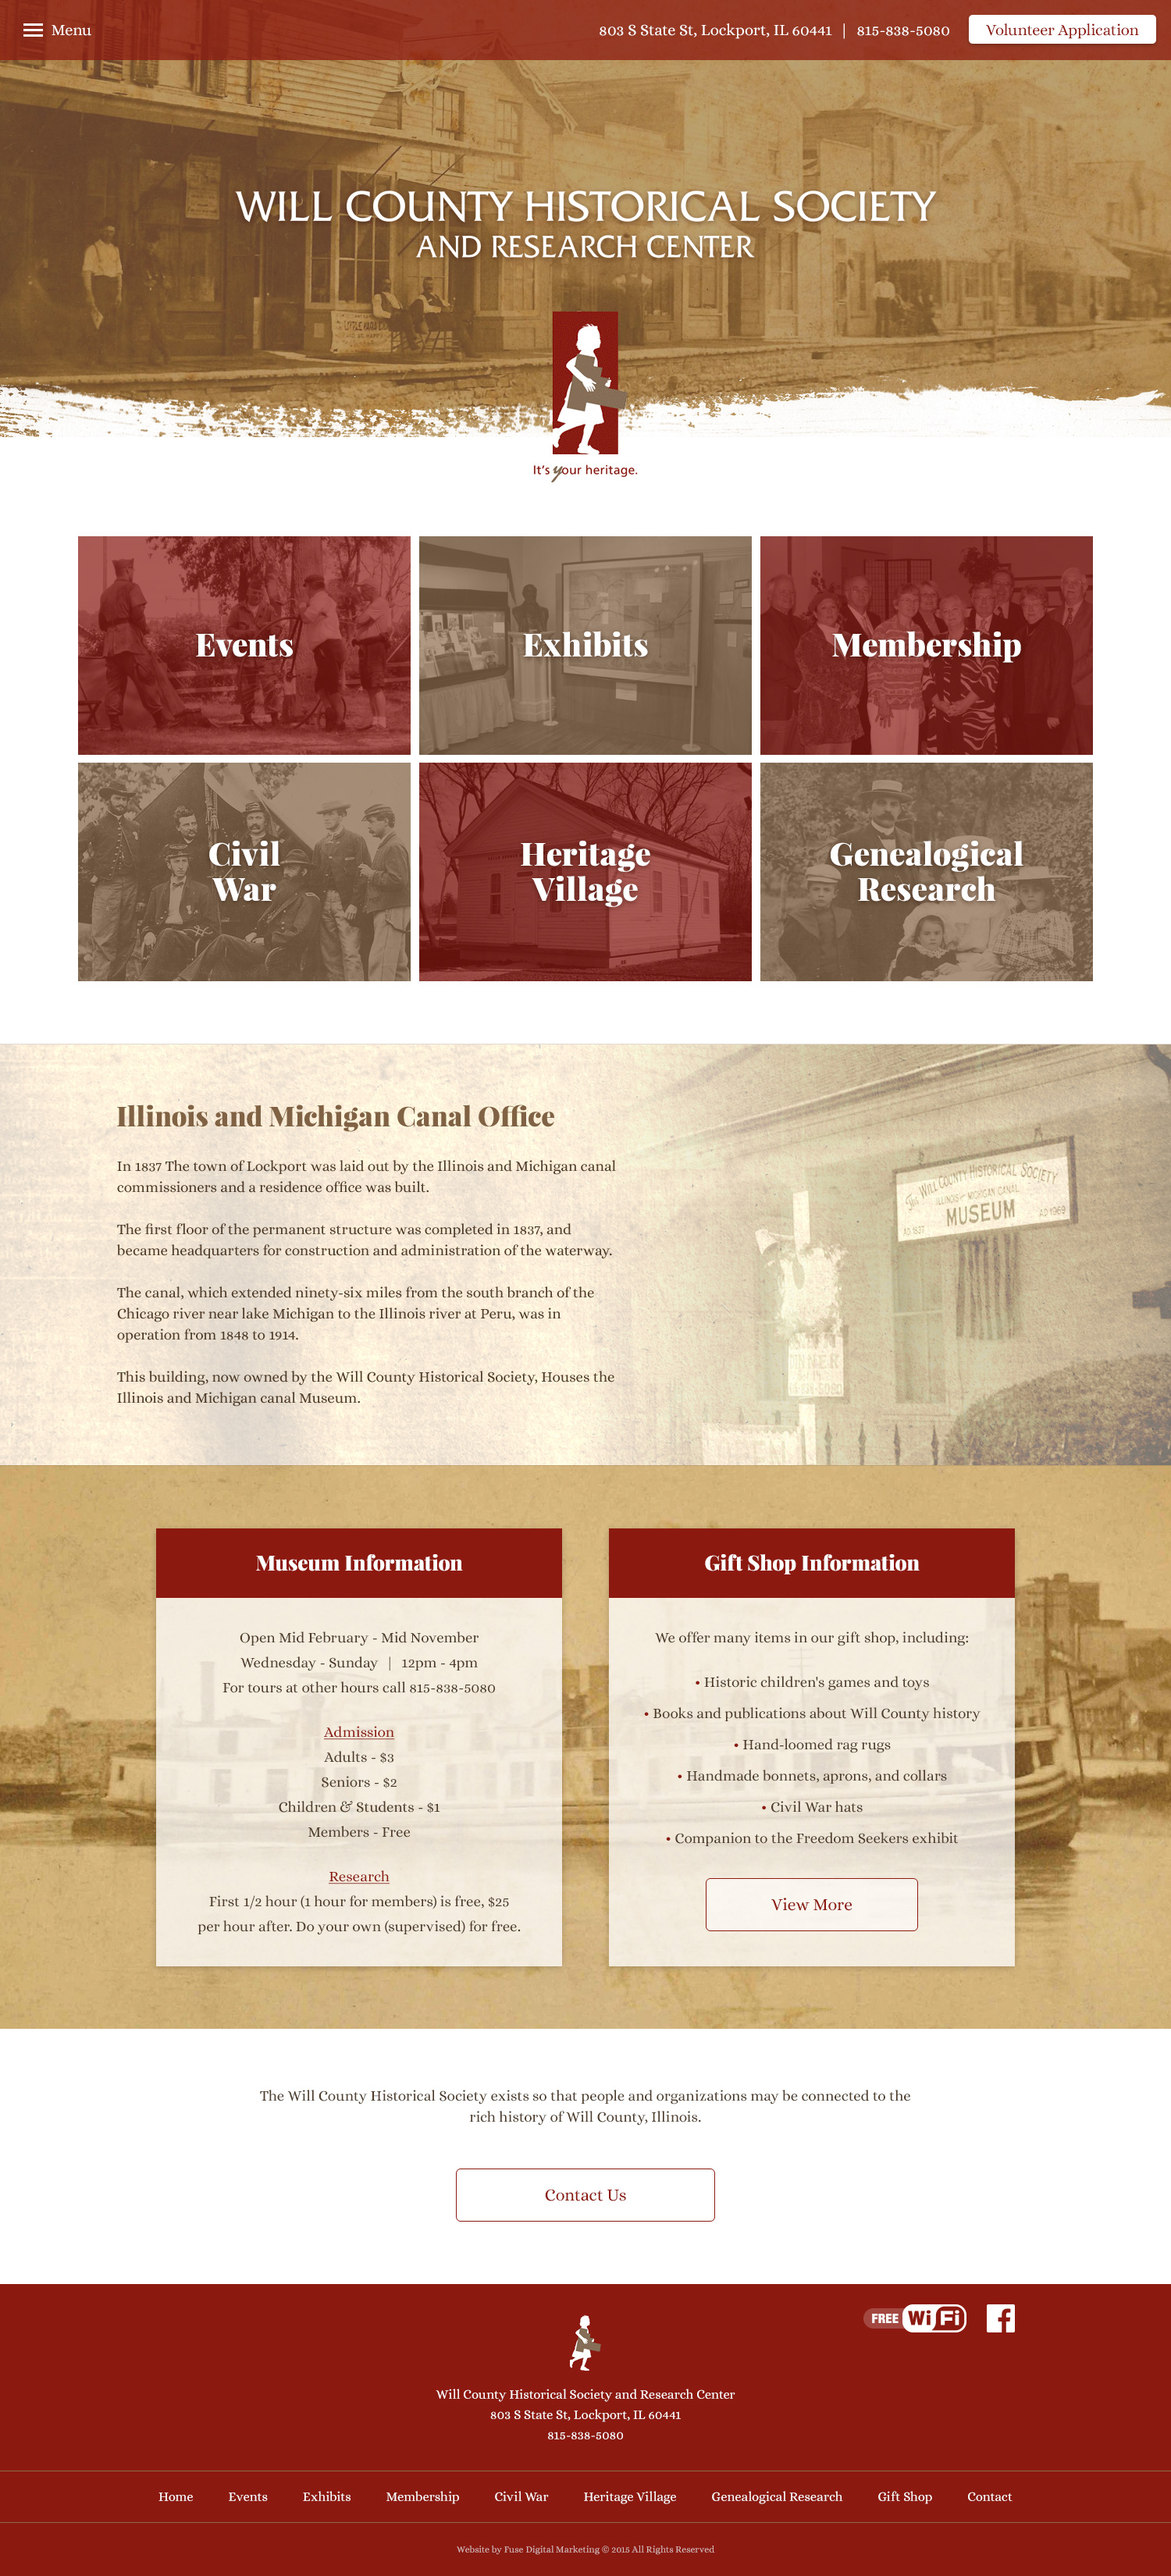 Will County Historical Society website design